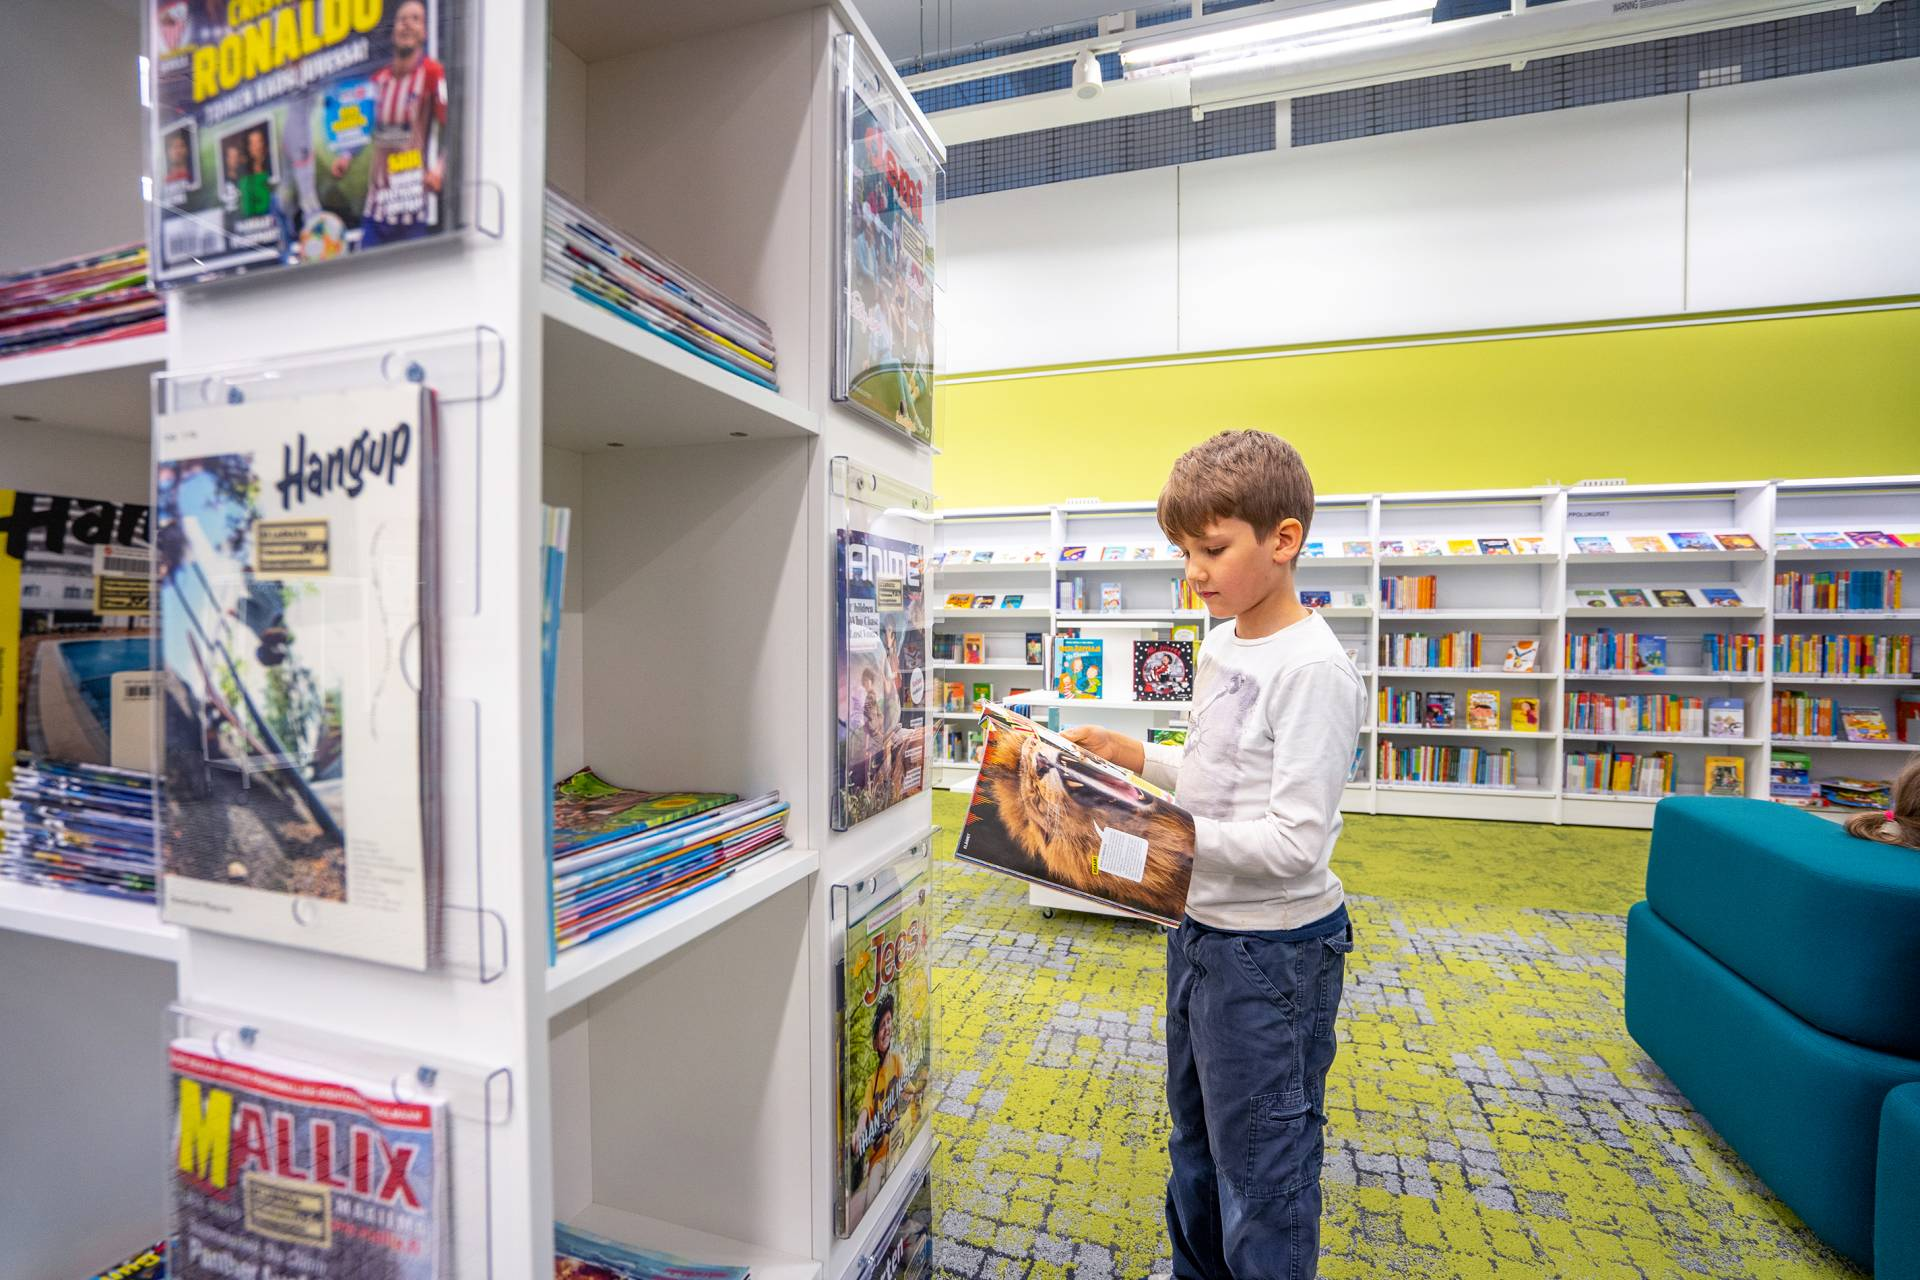 A boy holding a magazine in front of a shelf for magazines.